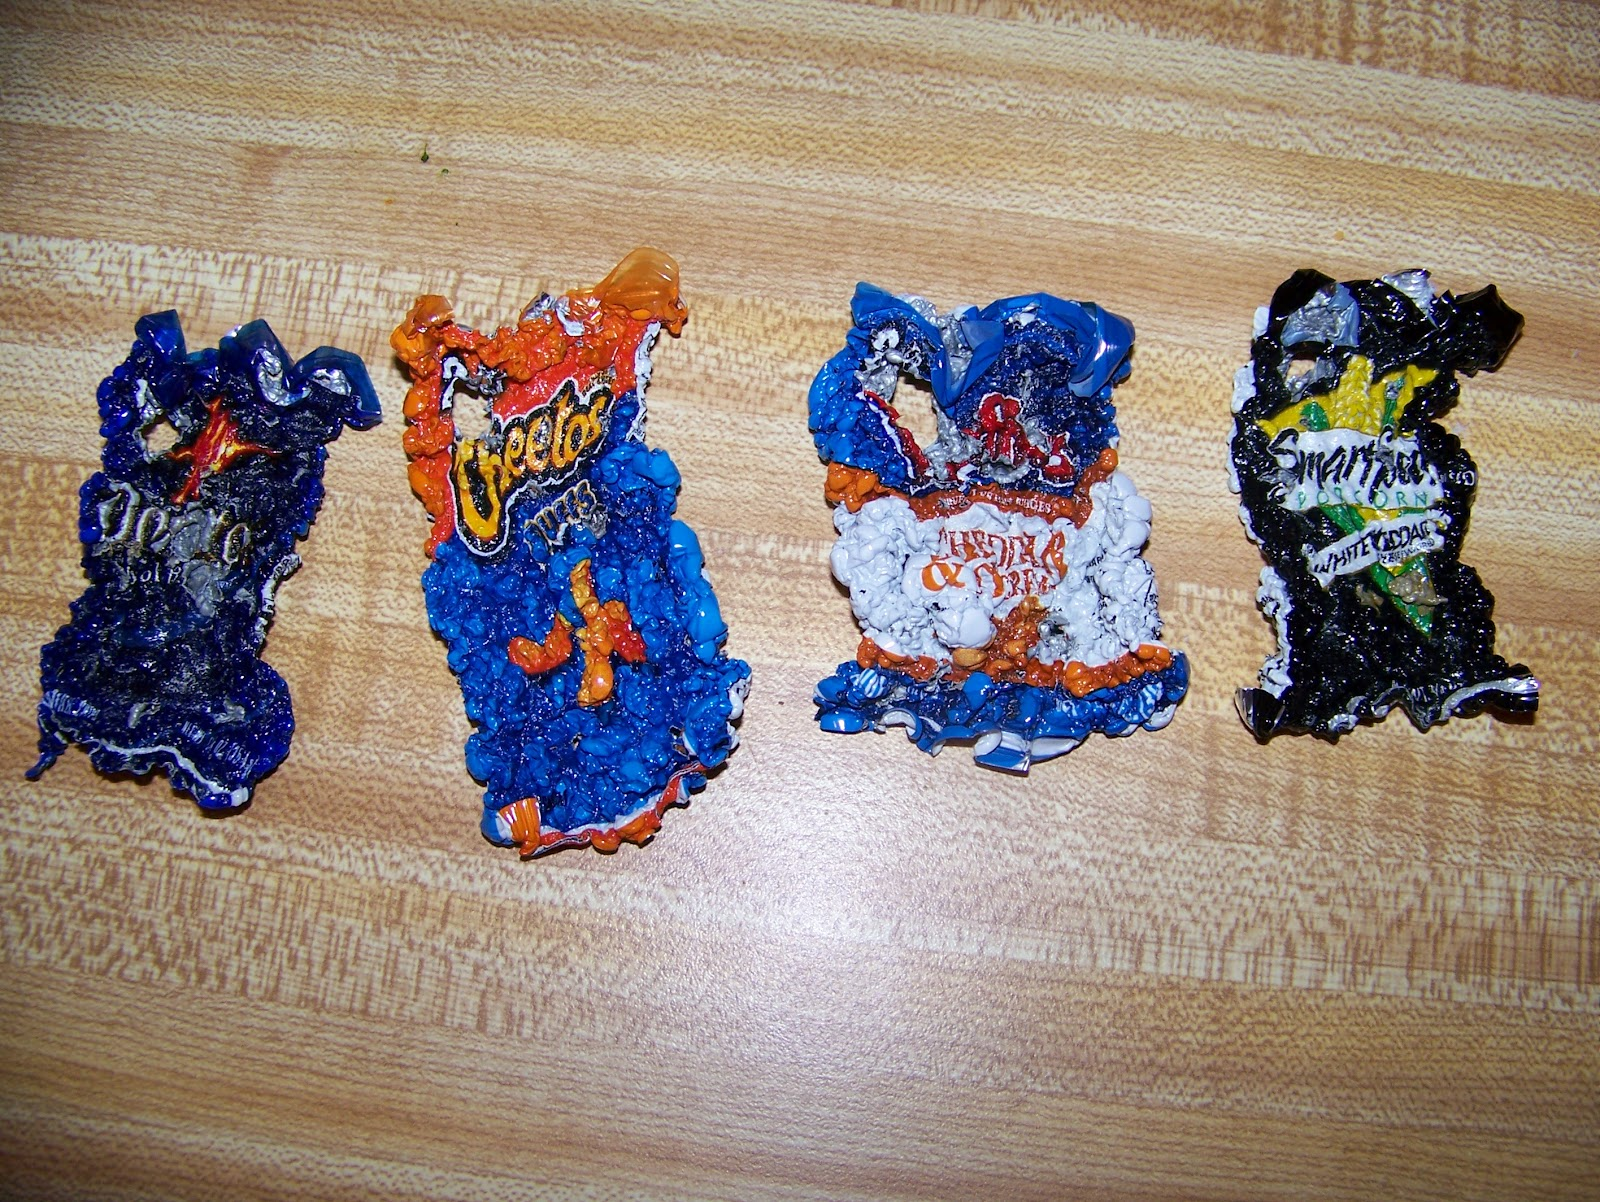 cooley stuff chip bag shrinky dink key chains